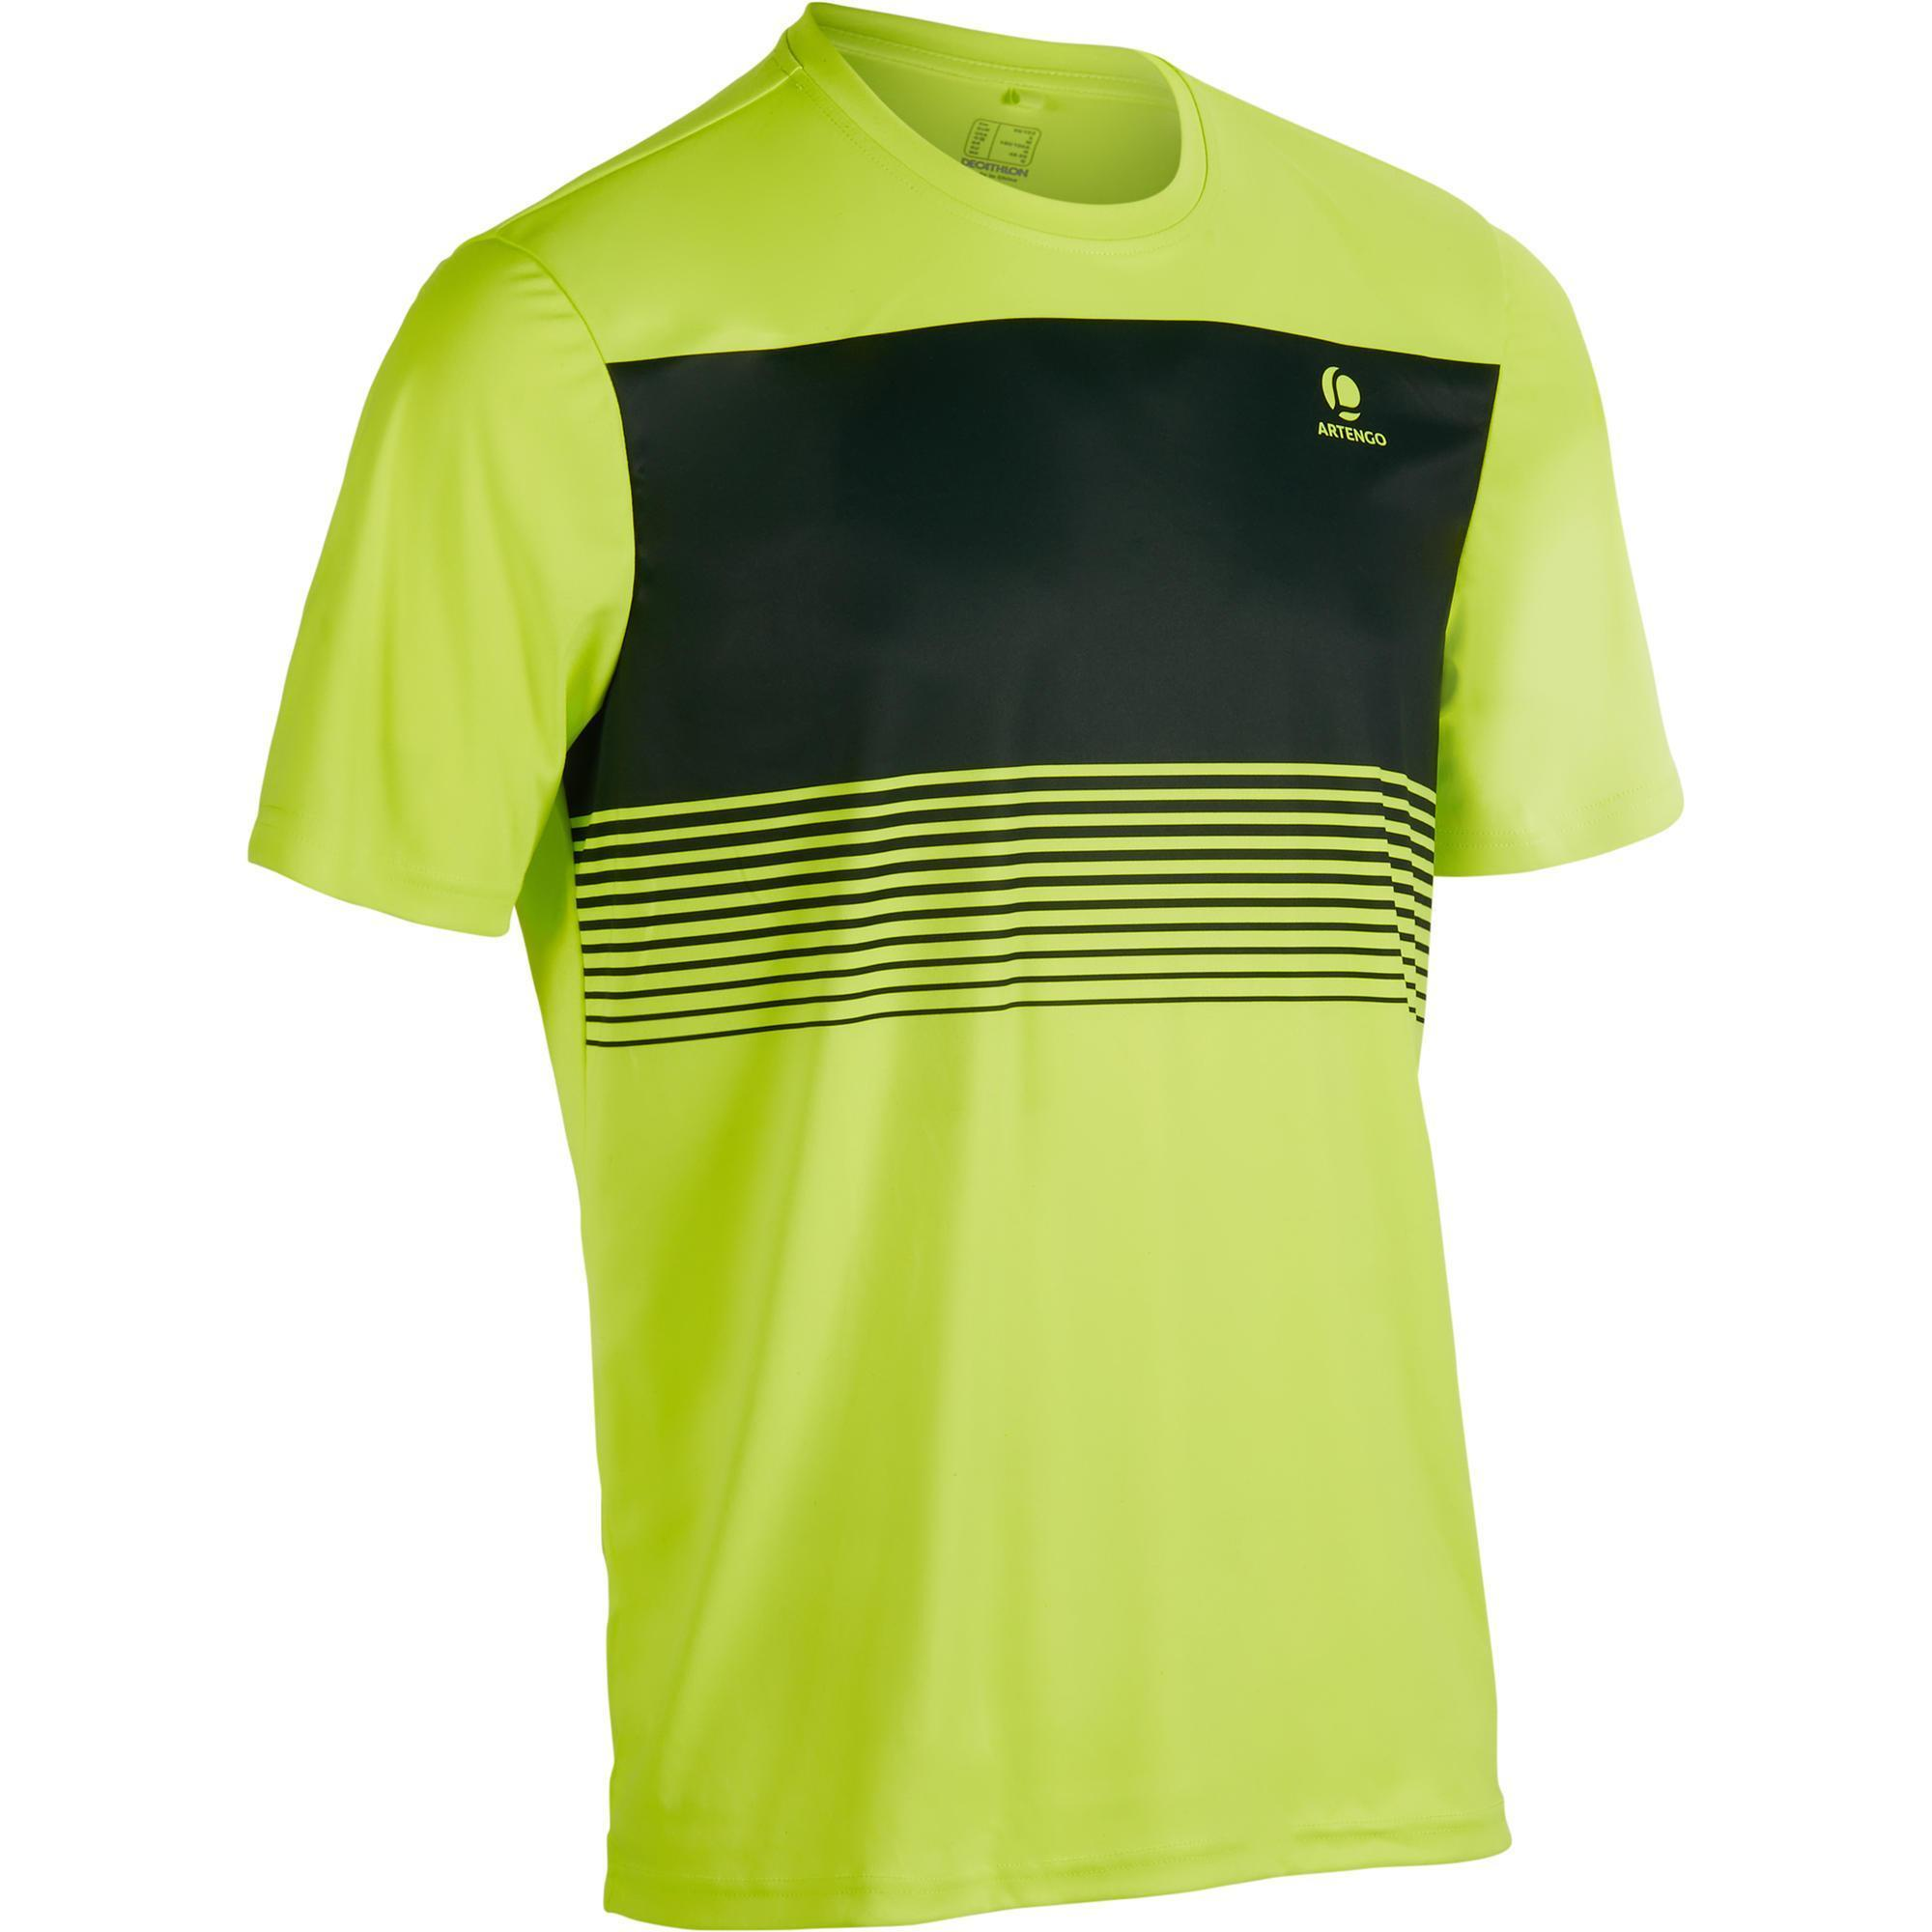 Soft 100 Tennis T-Shirt - Neon Yellow | artengo